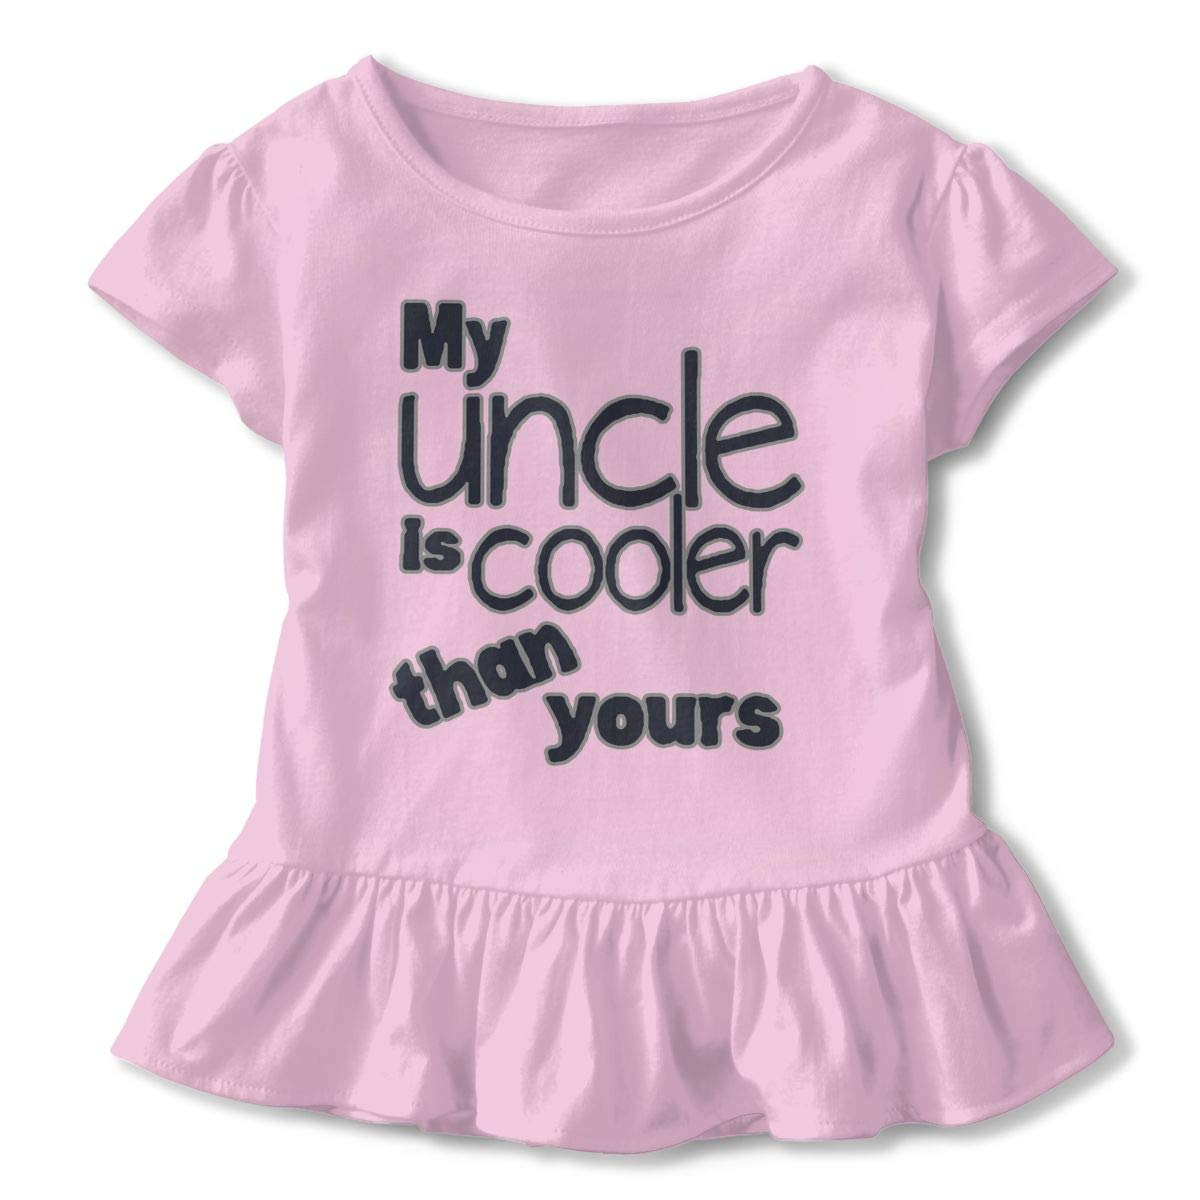 NMDJC CCQ My Uncle is Cooler Than Yours Baby Skirts Adorable Kids T Shirt Dress Comfortable Flounces Outfits